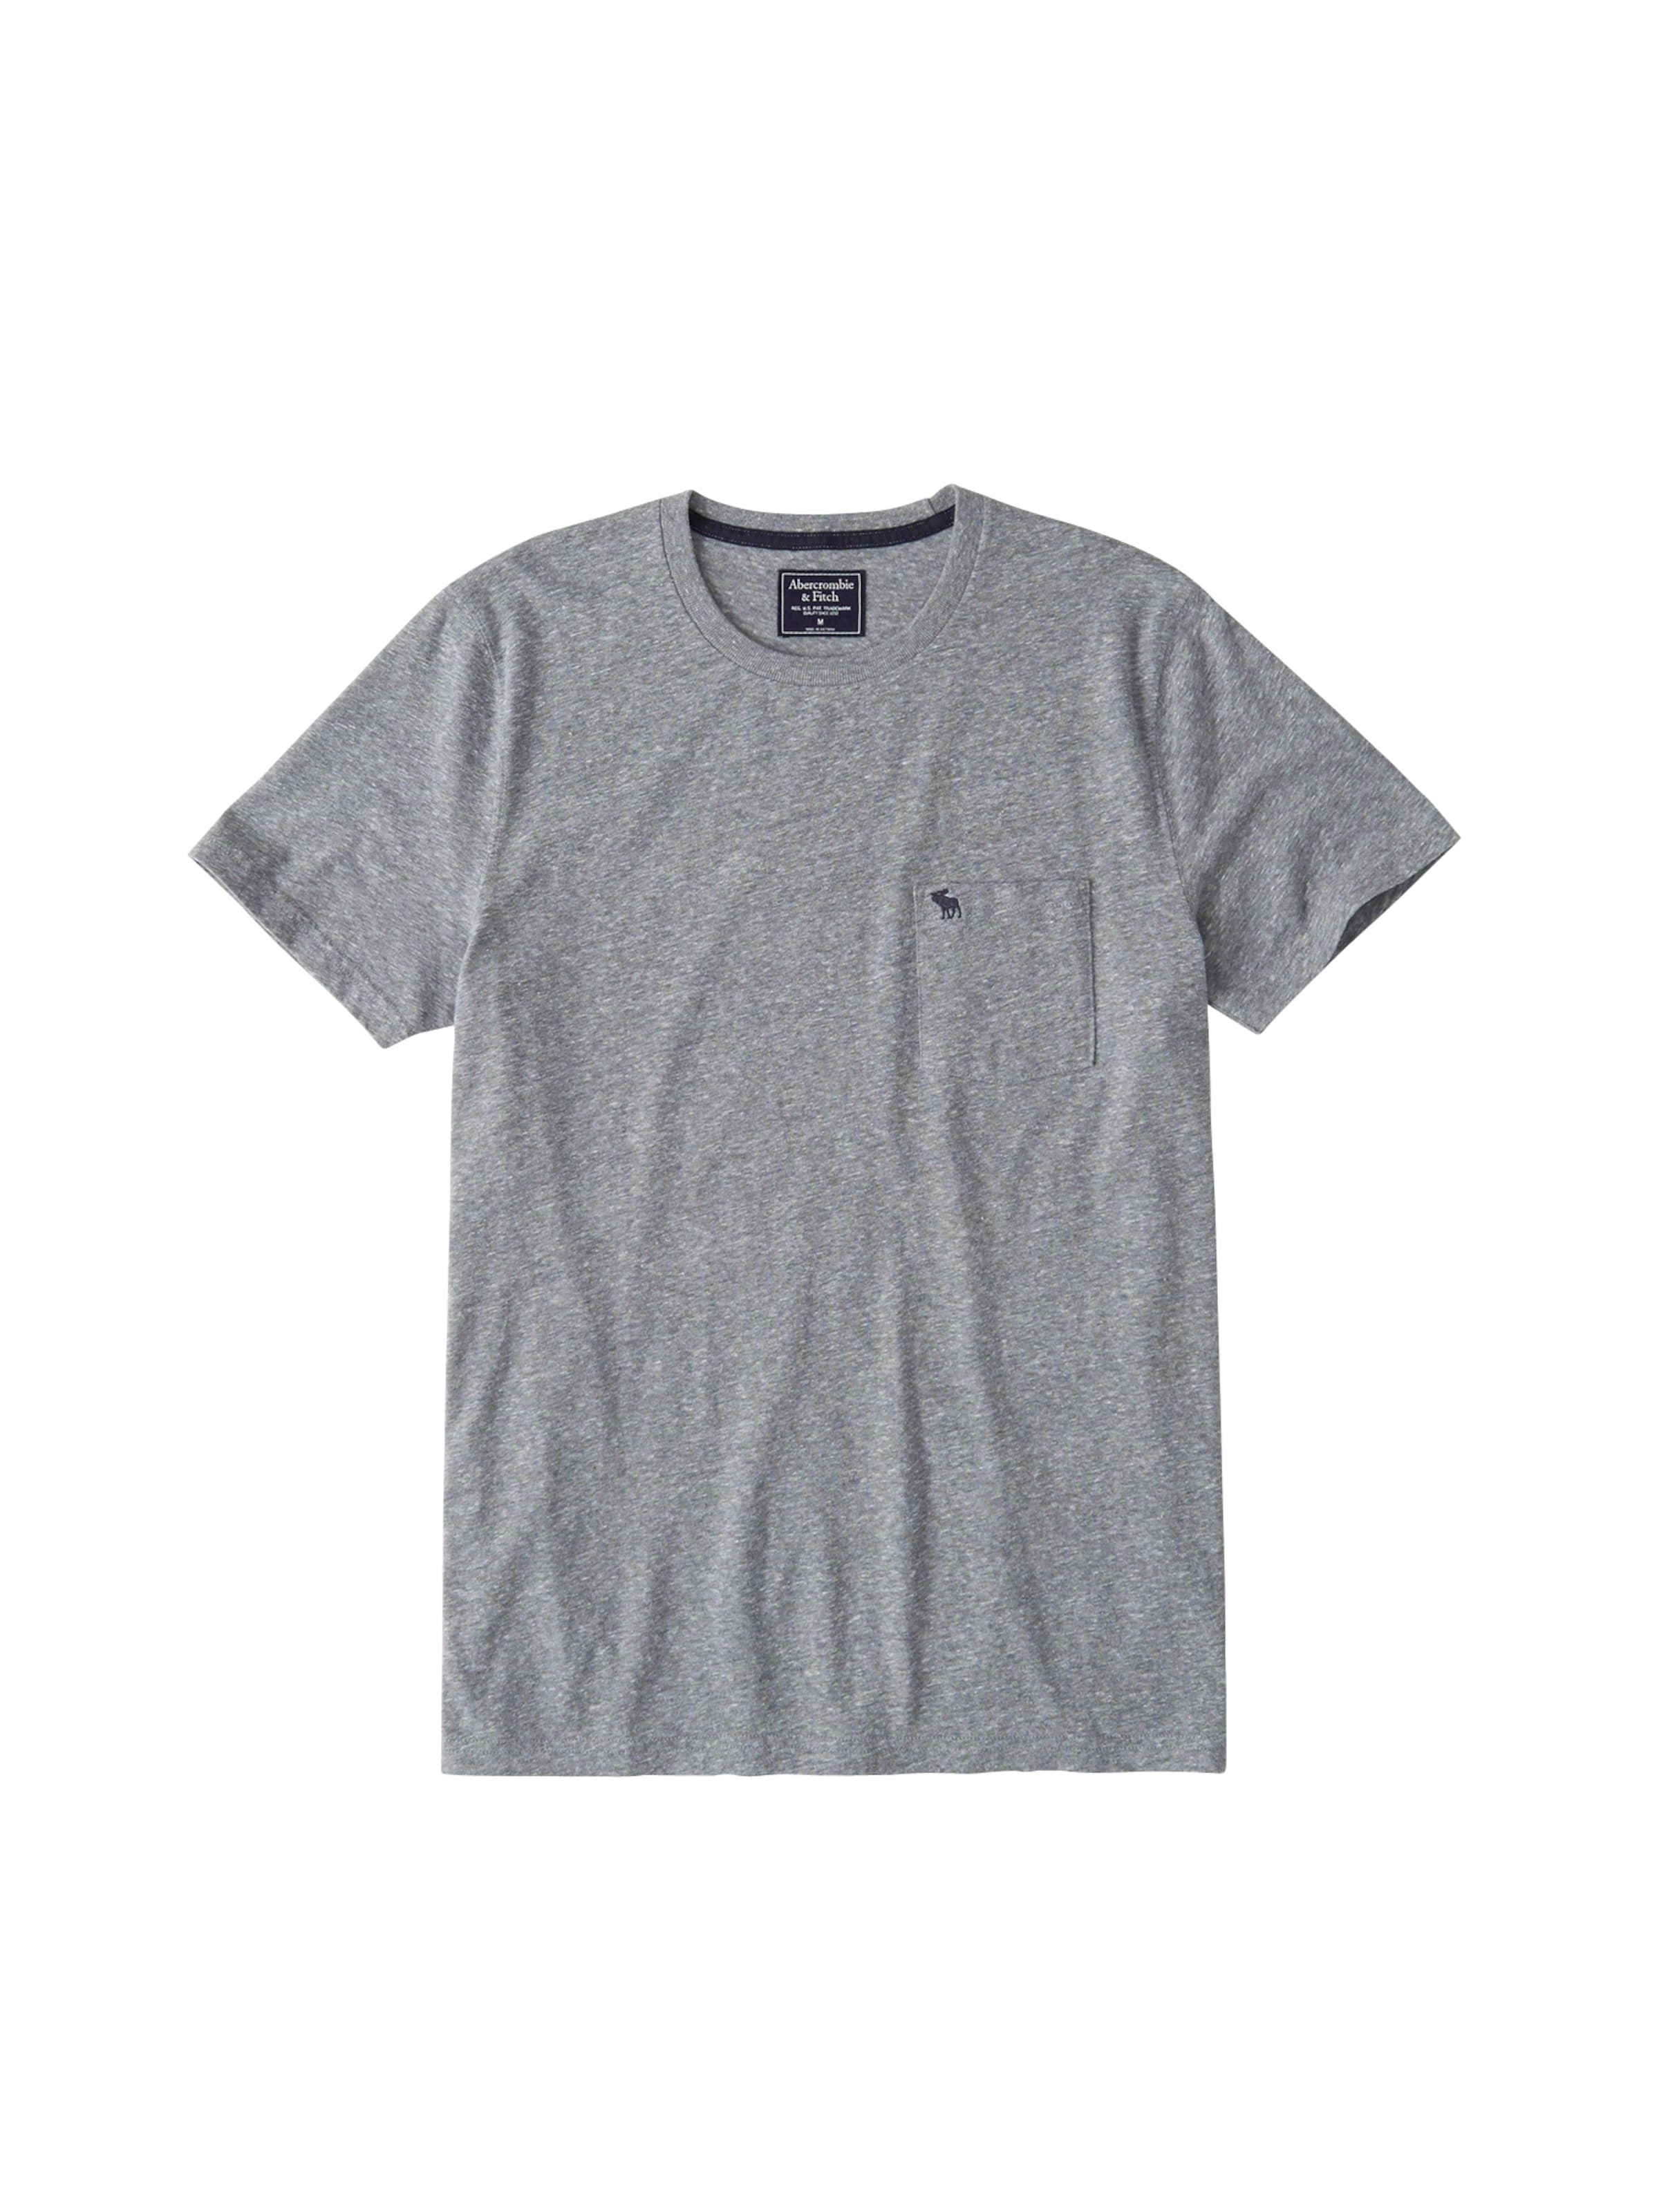 Abercrombieamp; shirt En Fitch Neutral' T Gris 'crew y8nPvwm0ON